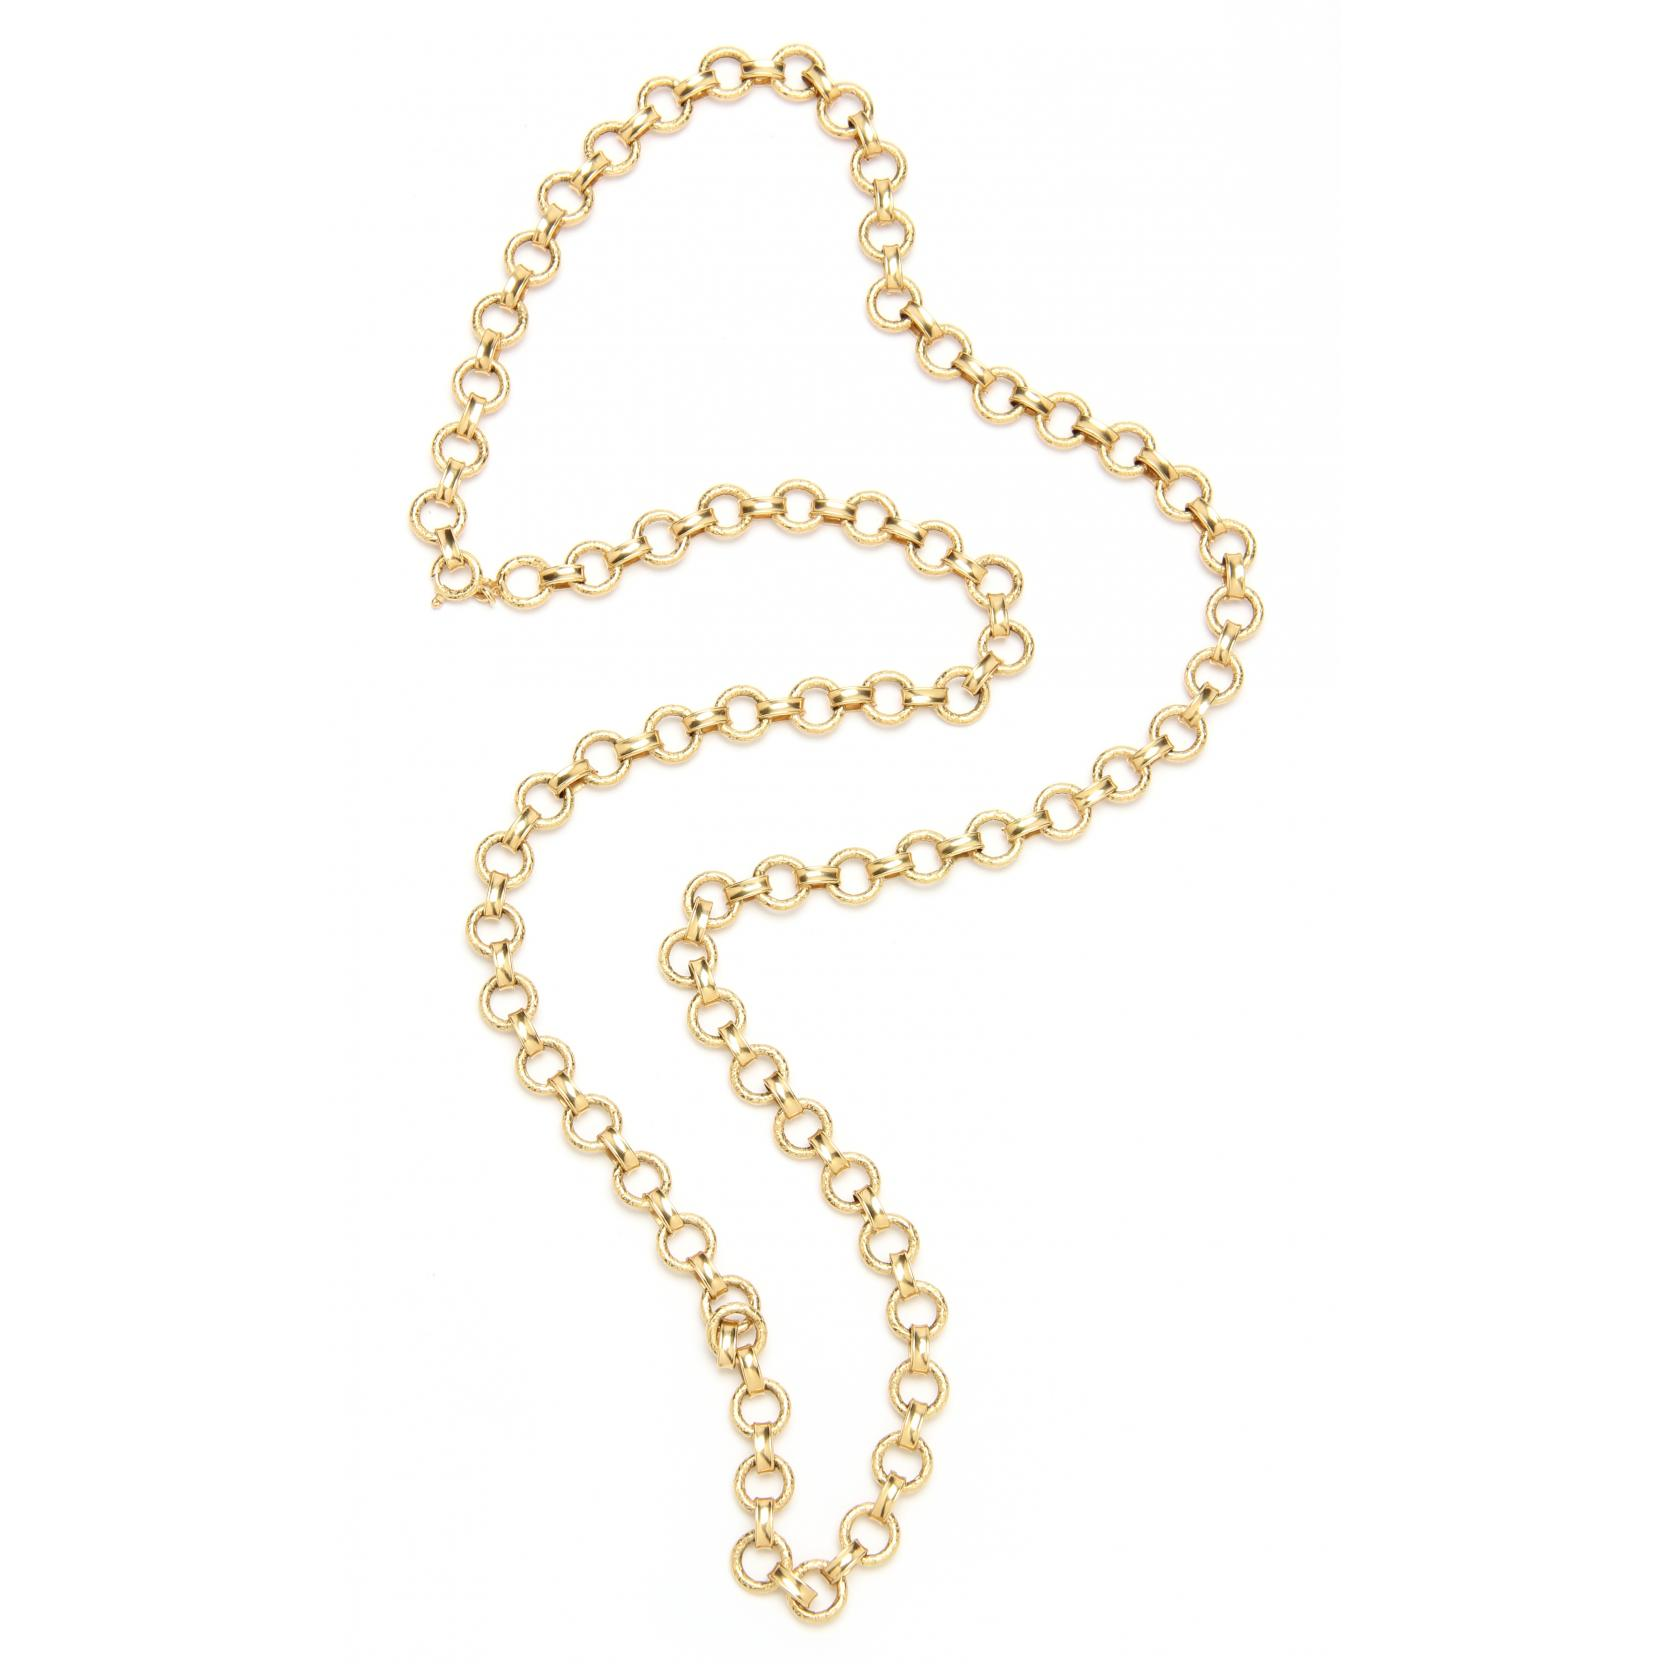 18kt-gold-necklace